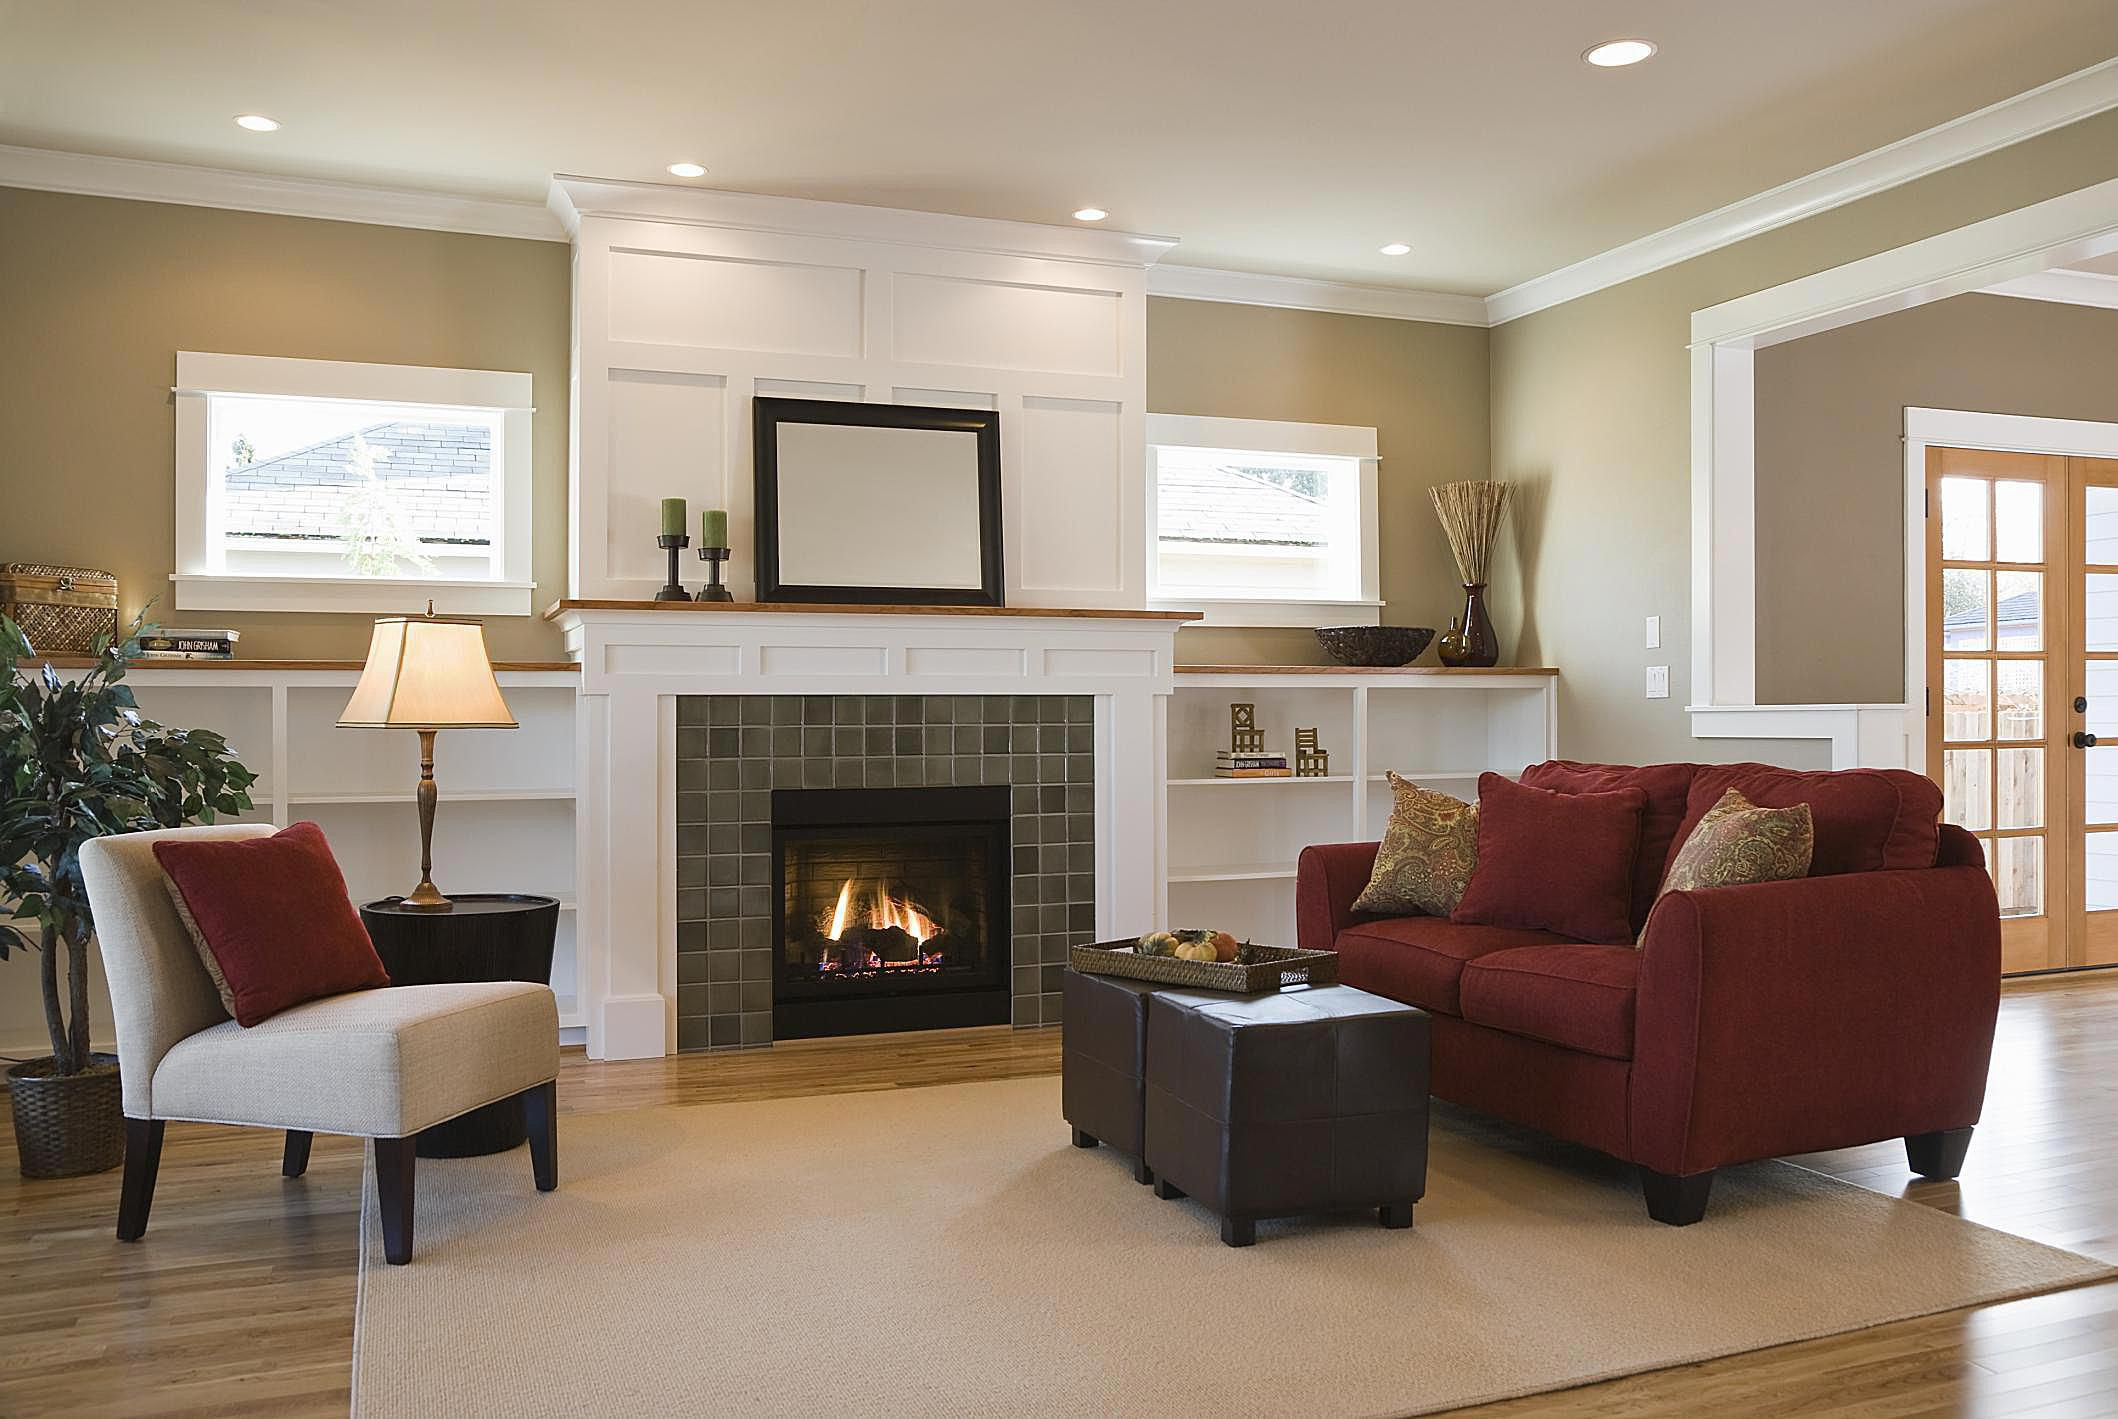 Best ideas about Living Room Remodel . Save or Pin Bud Living Room Design Inspiration Now.